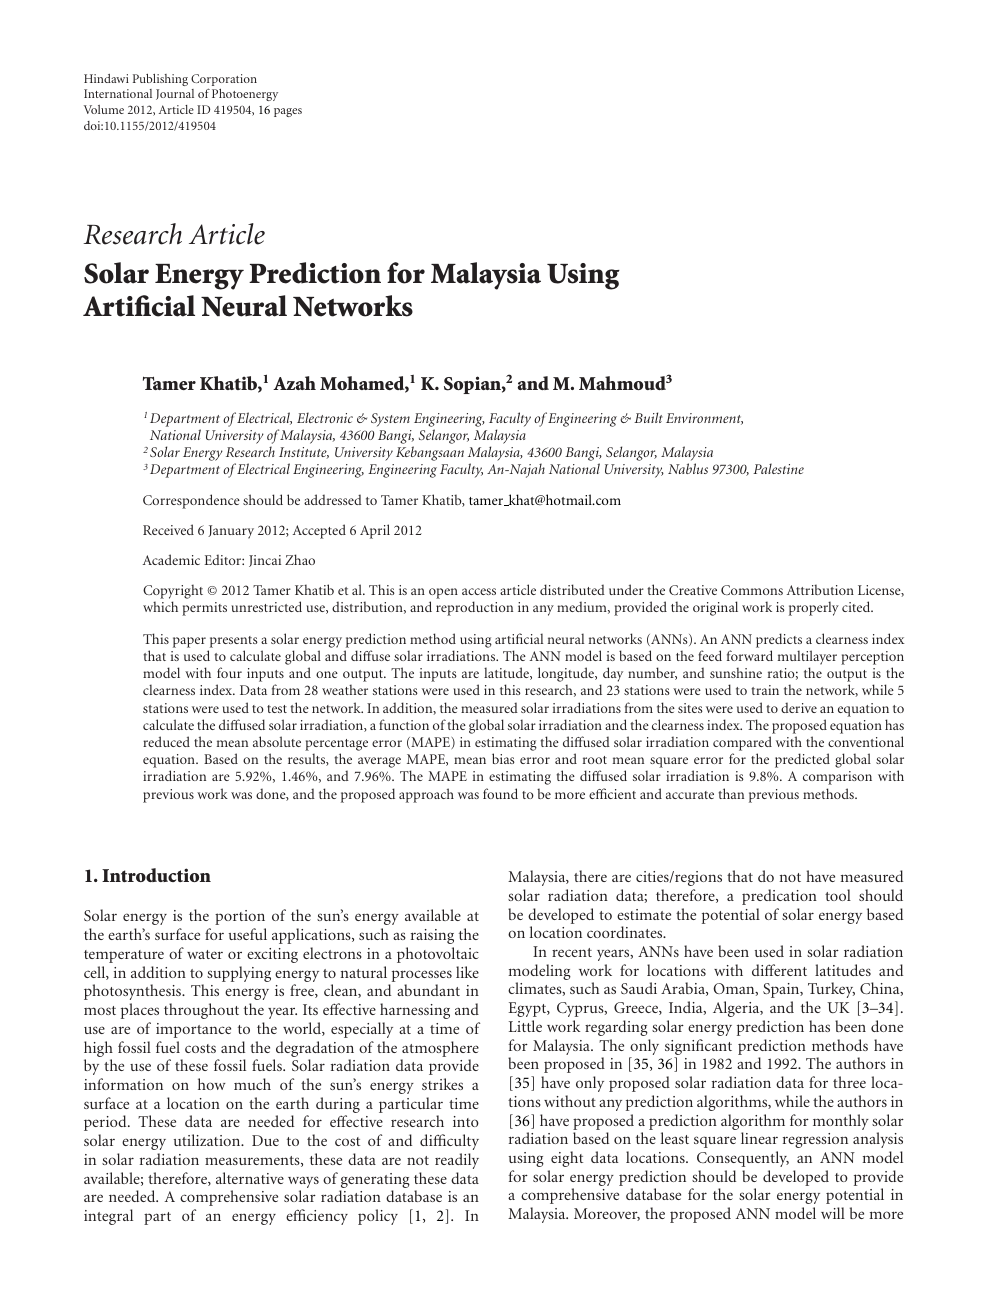 Solar Energy Prediction For Malaysia Using Artificial Neural Networks Topic Of Research Paper In Earth And Related Environmental Sciences Download Scholarly Article Pdf And Read For Free On Cyberleninka Open Science